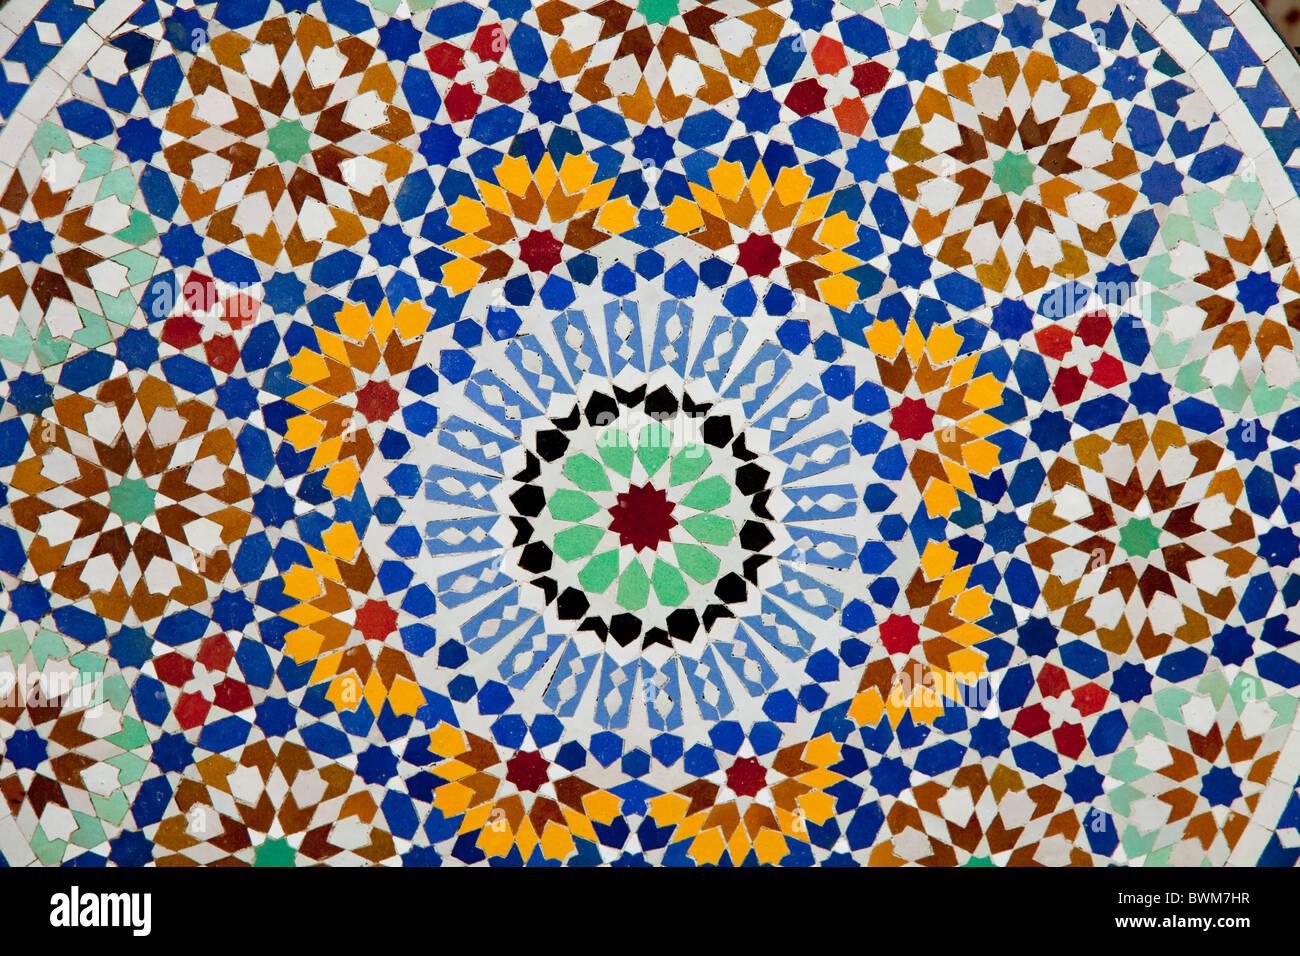 A ceramic factory manufacturing mosaic tile fountains and a ceramic factory manufacturing mosaic tile fountains and furniture in fes morocco dailygadgetfo Gallery